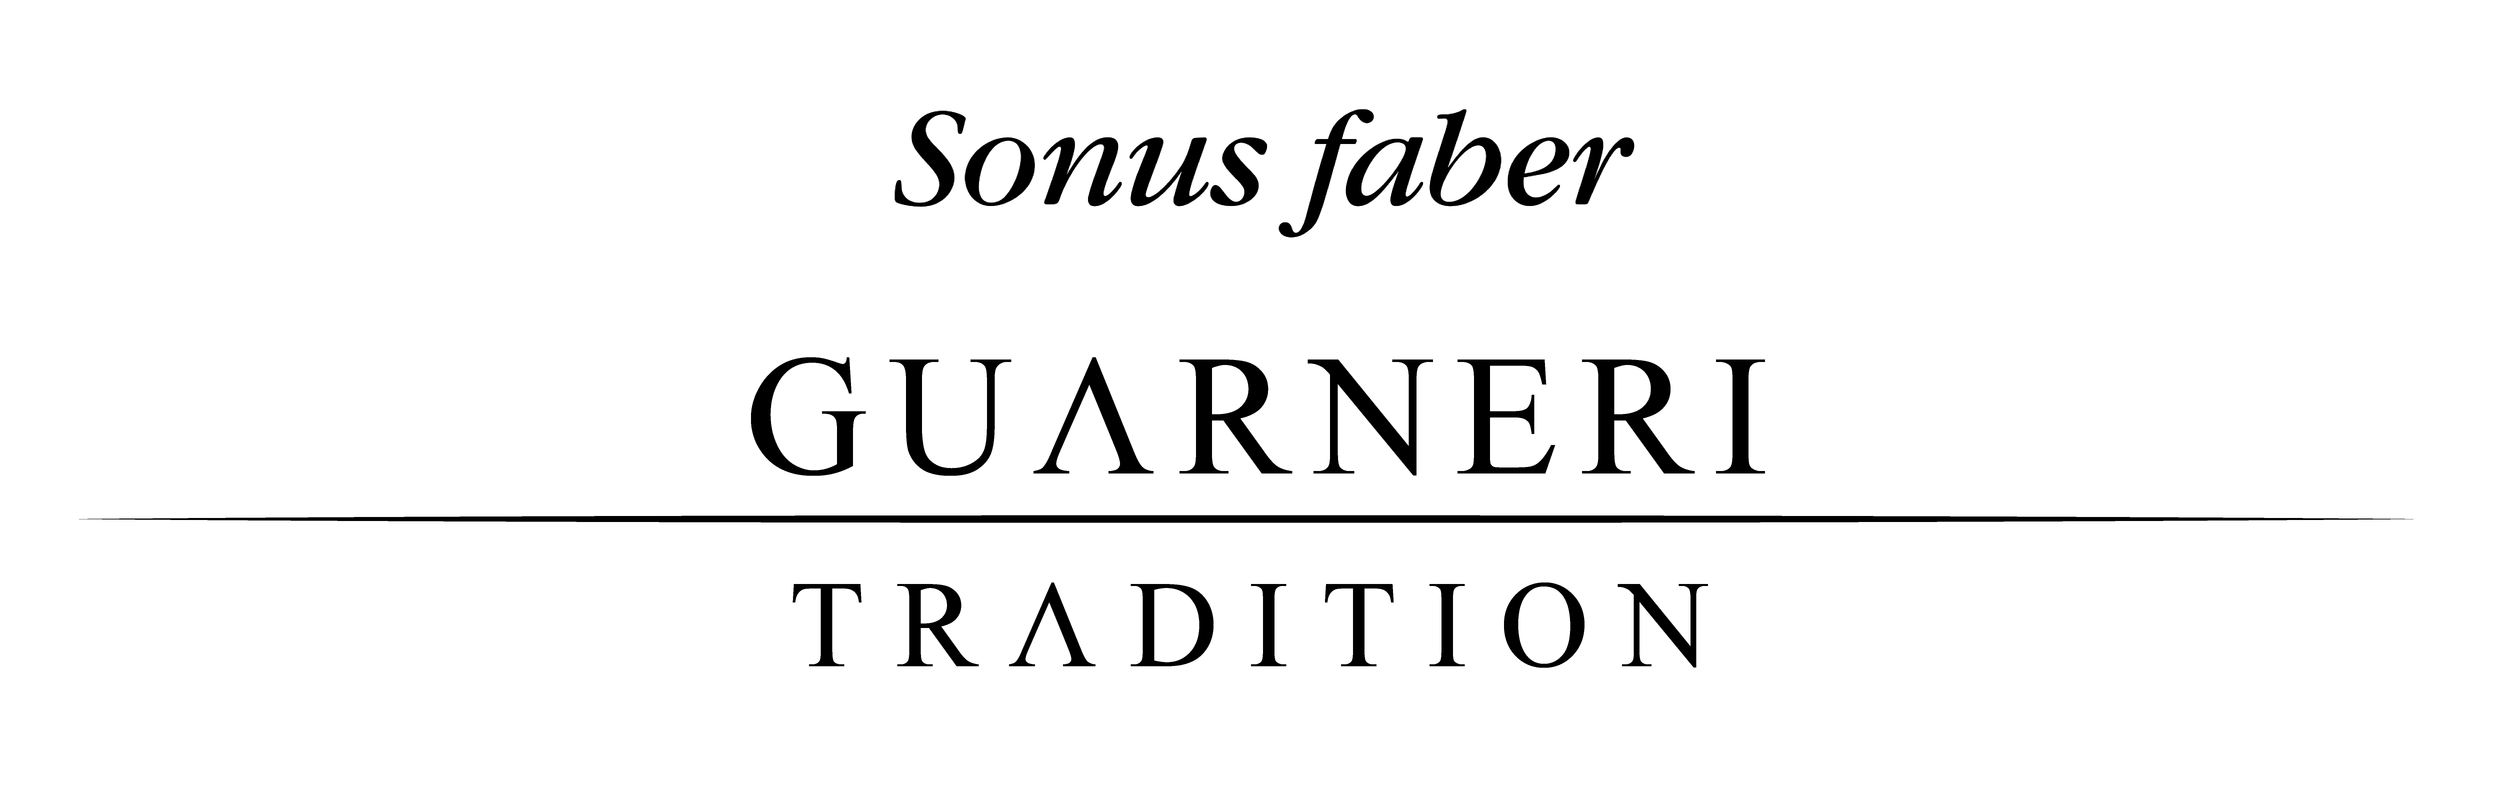 Sonus Faber Guarneri logo-01.png